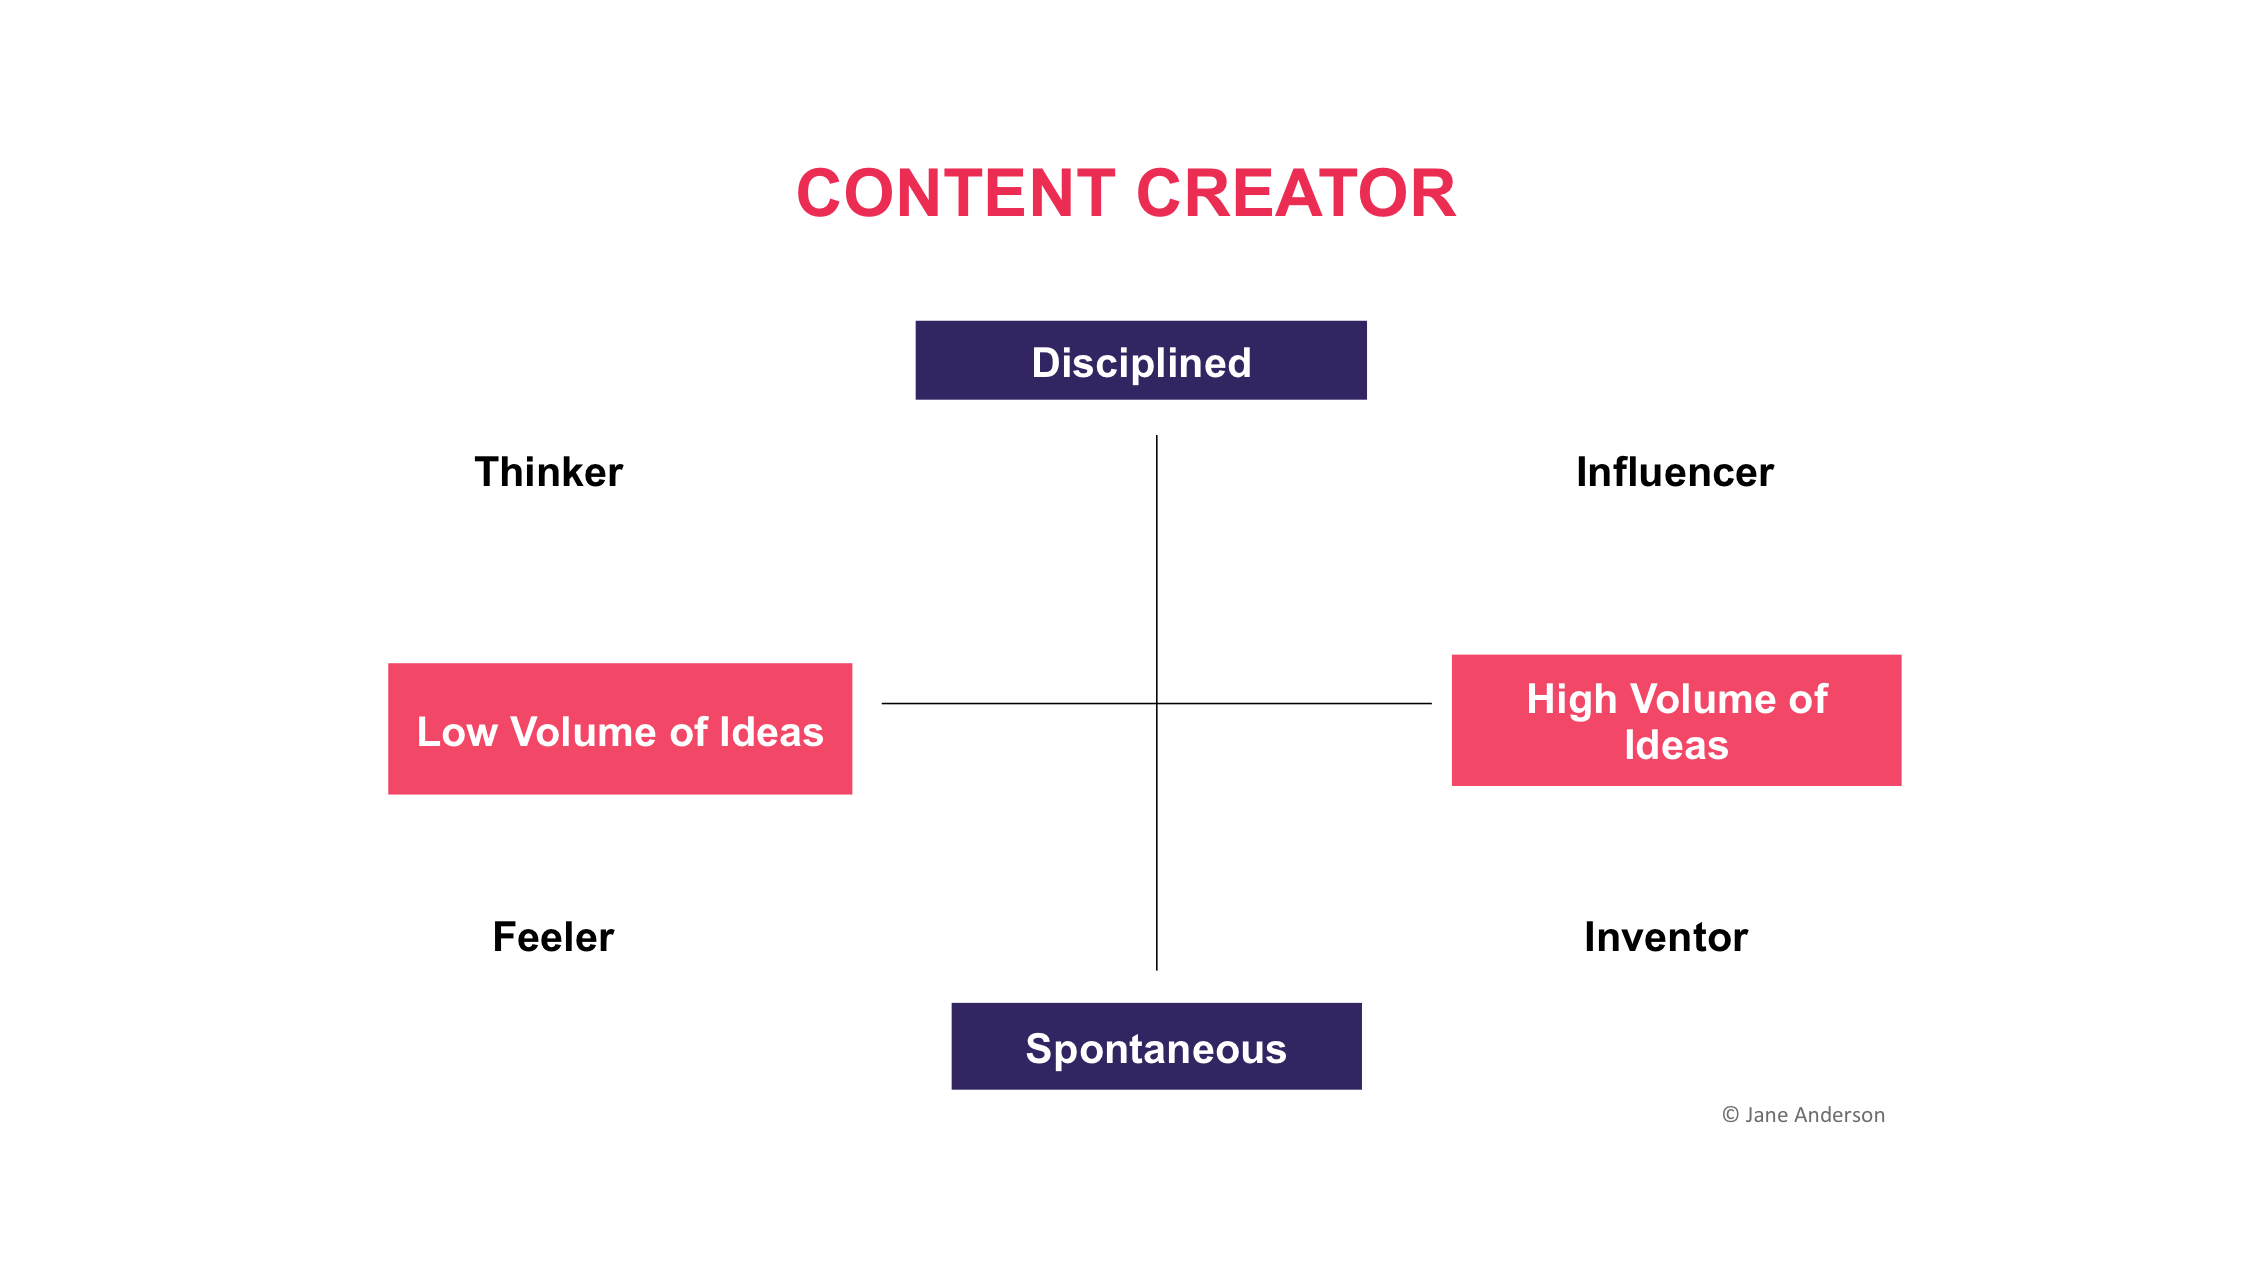 Content Creator model - What Type of Content Creator are You